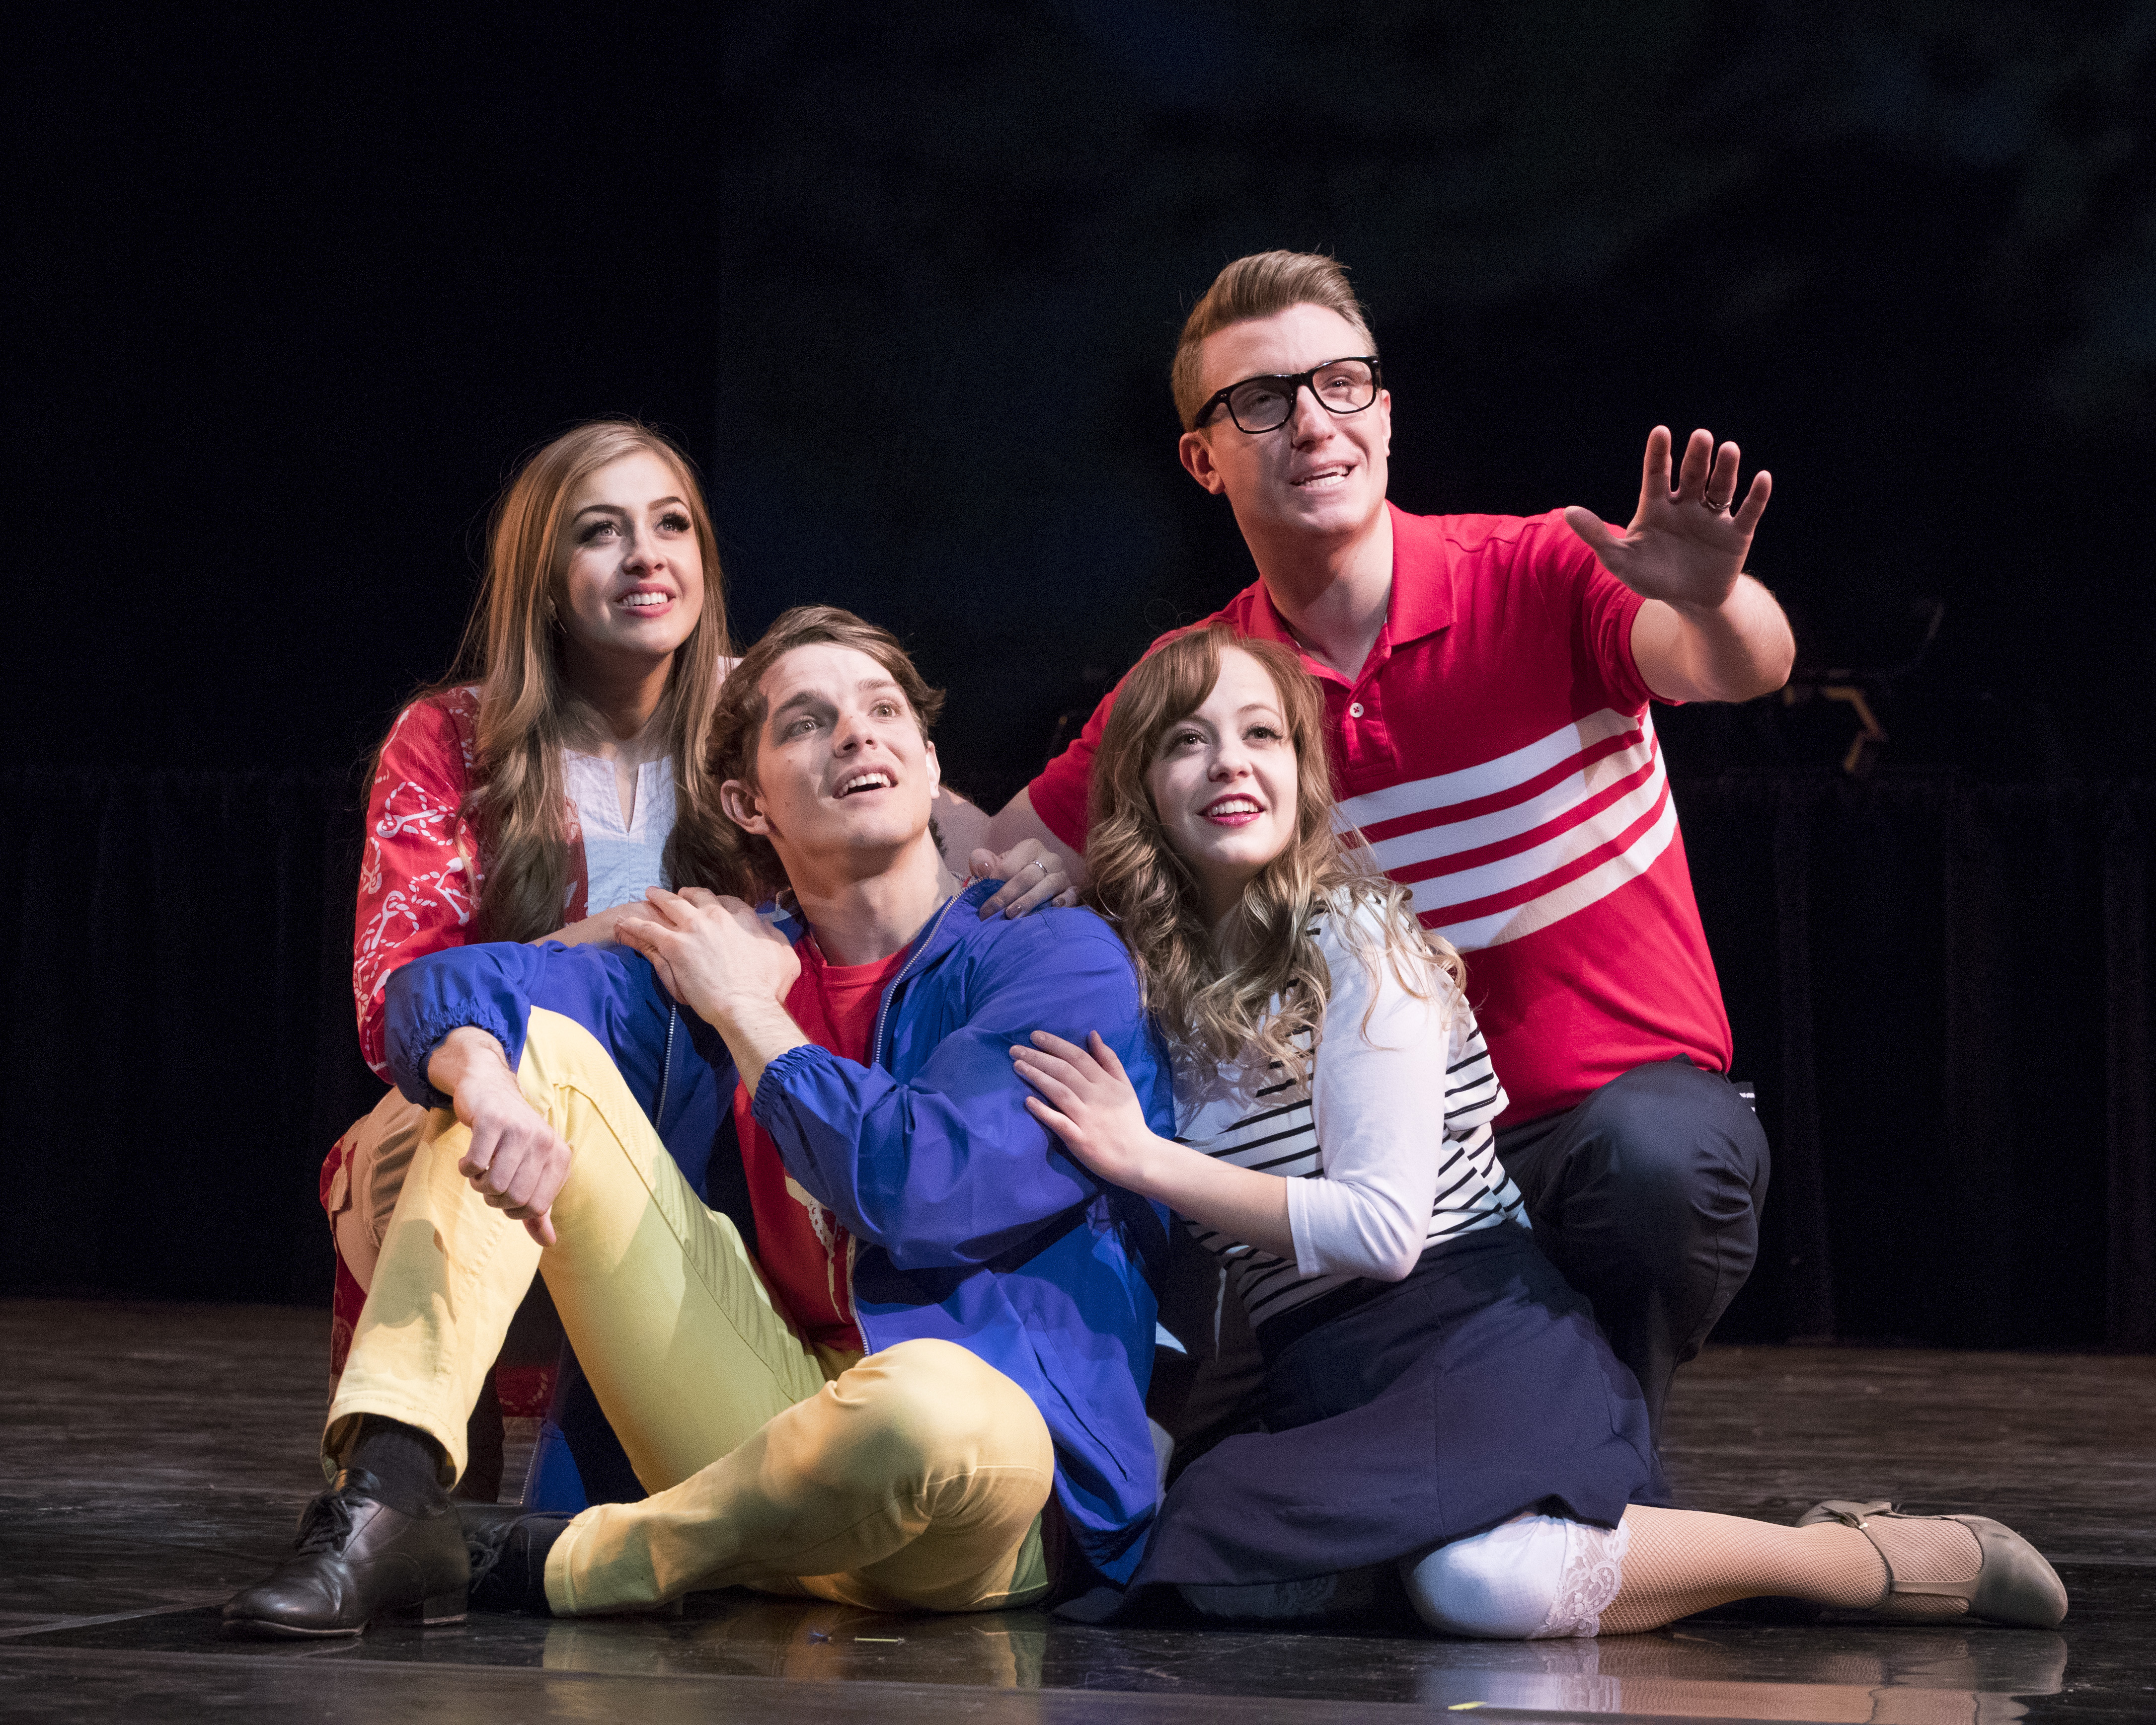 From left to right: Breearna Mandla, Caleb Allred, Hannah Pyper, and Preston Taylor performing in 'Welcome Home.' Photo by Jaren Wilkey/BYU  © BYU PHOTO 2017 All Rights Reserved photo@byu.edu  (801)422-7322